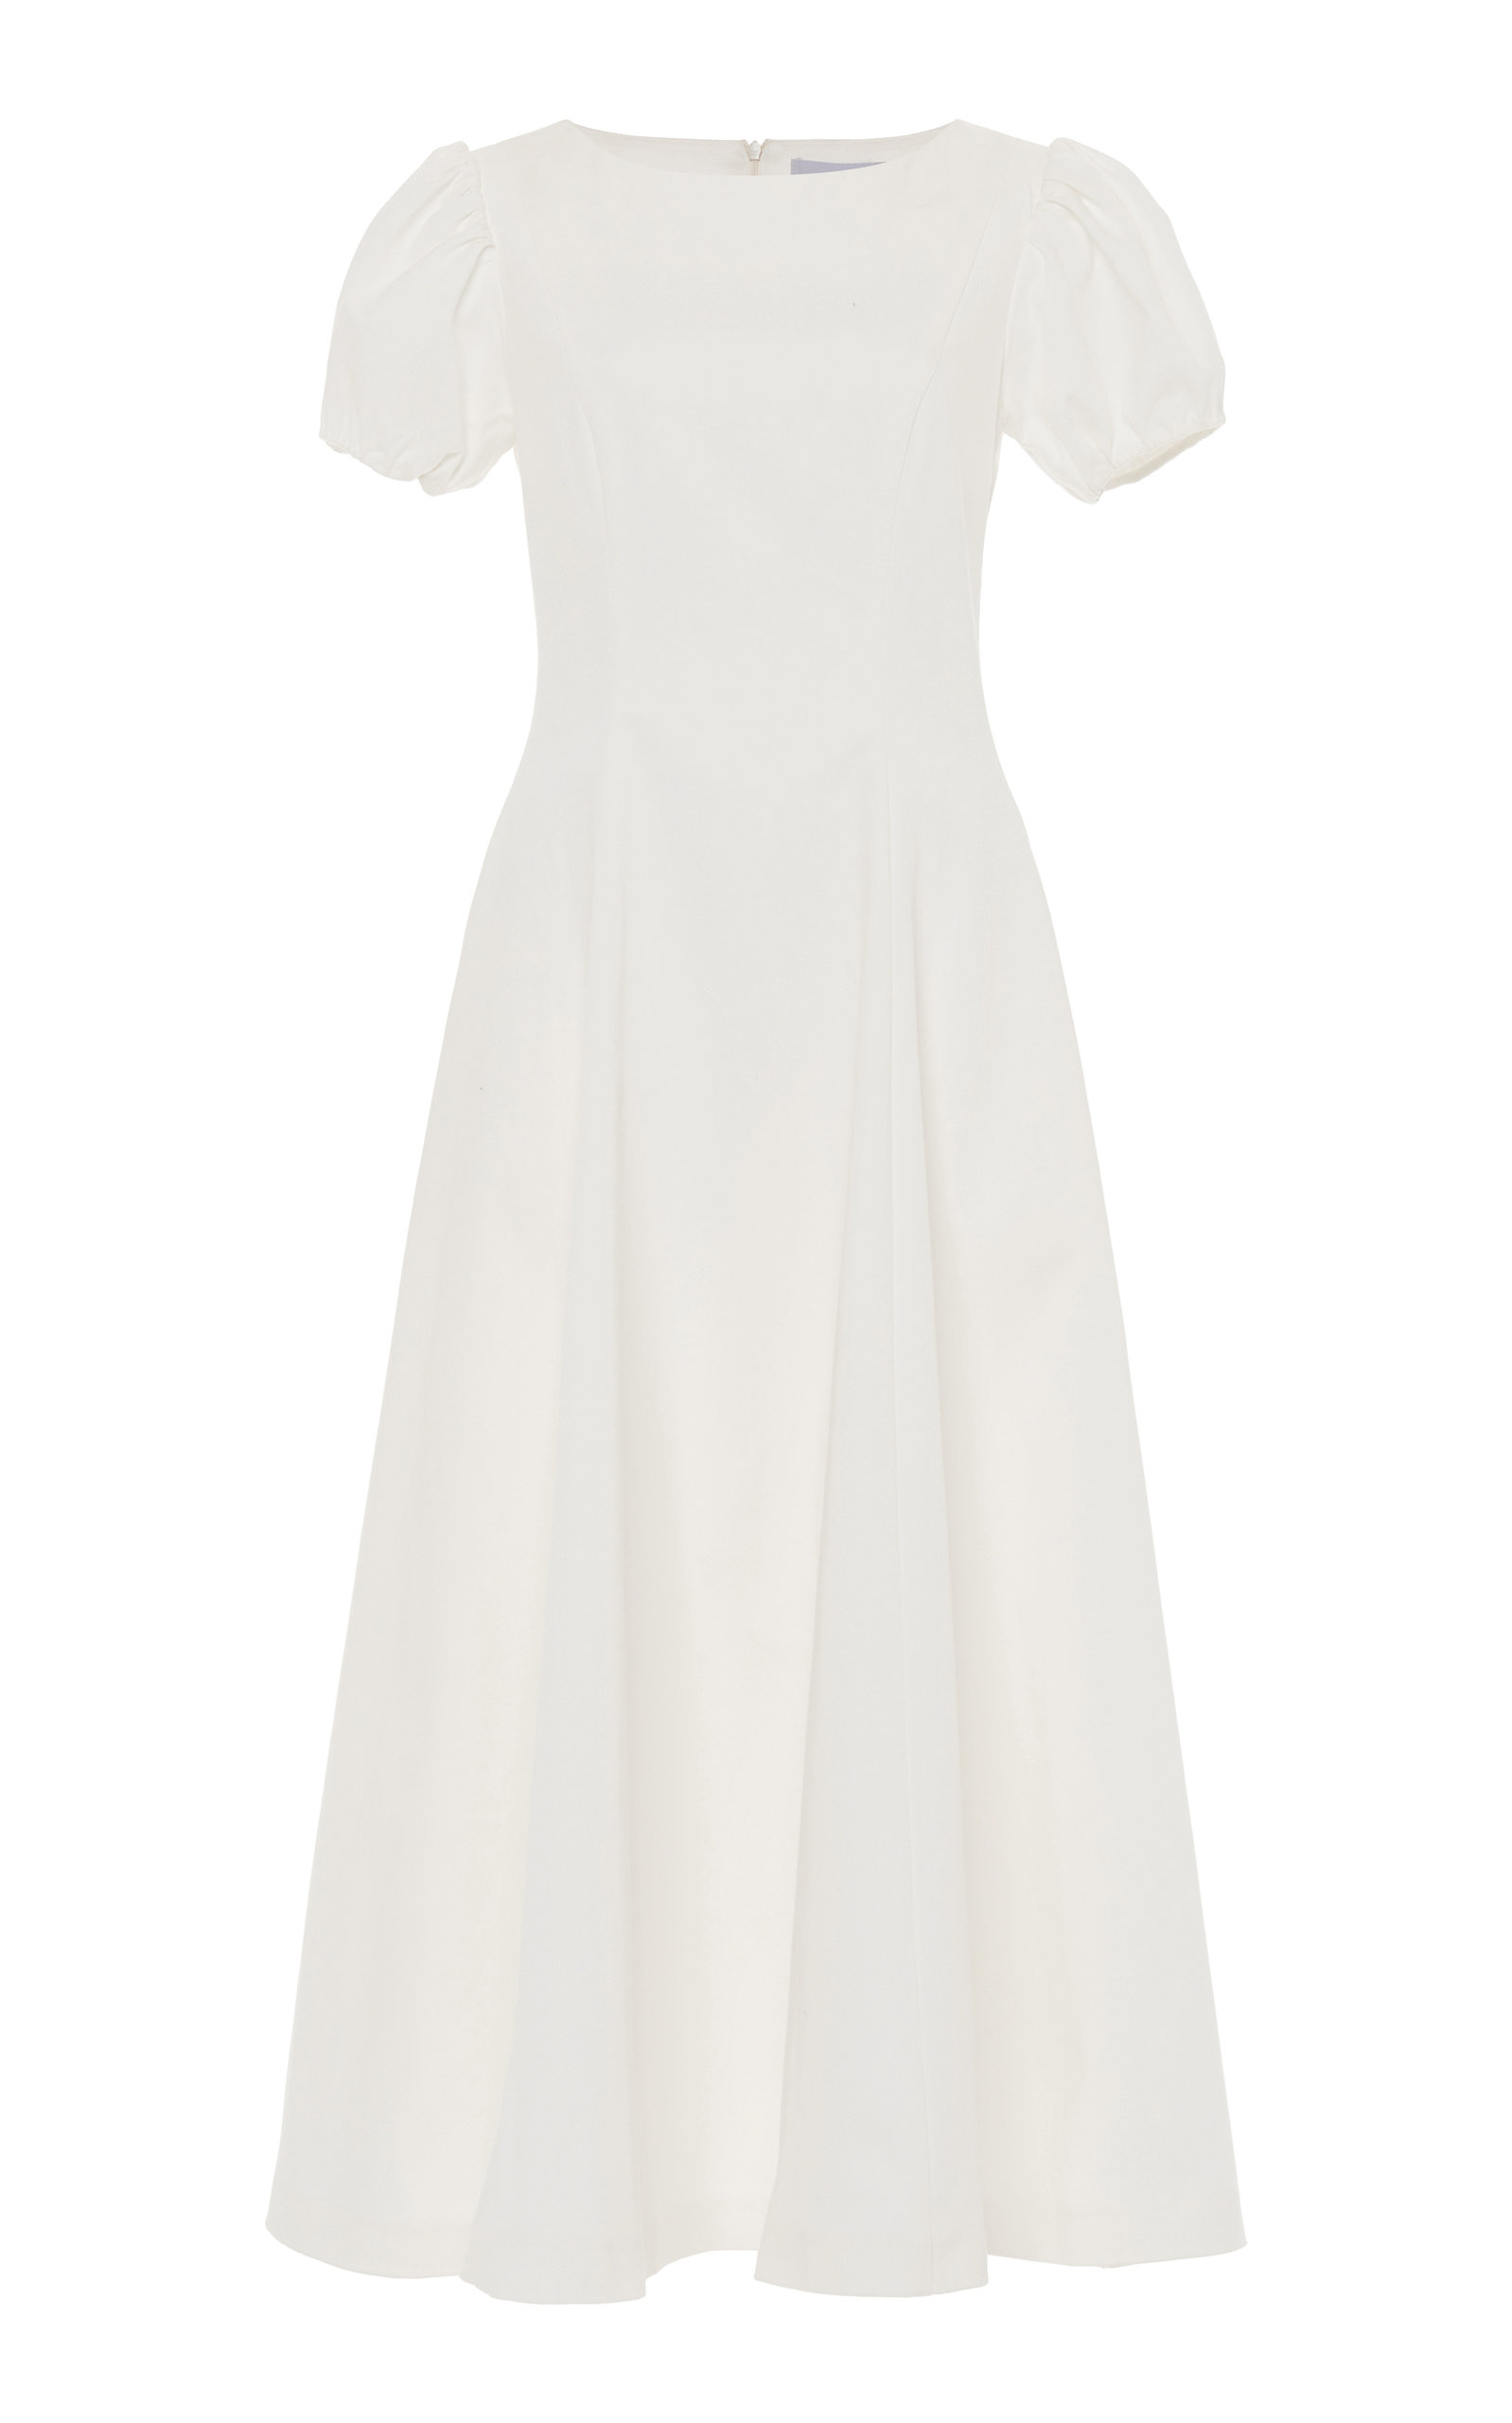 Buy Luisa Beccaria Stretch Cotton-Blend Midi Dress online, shop Luisa Beccaria at the best price